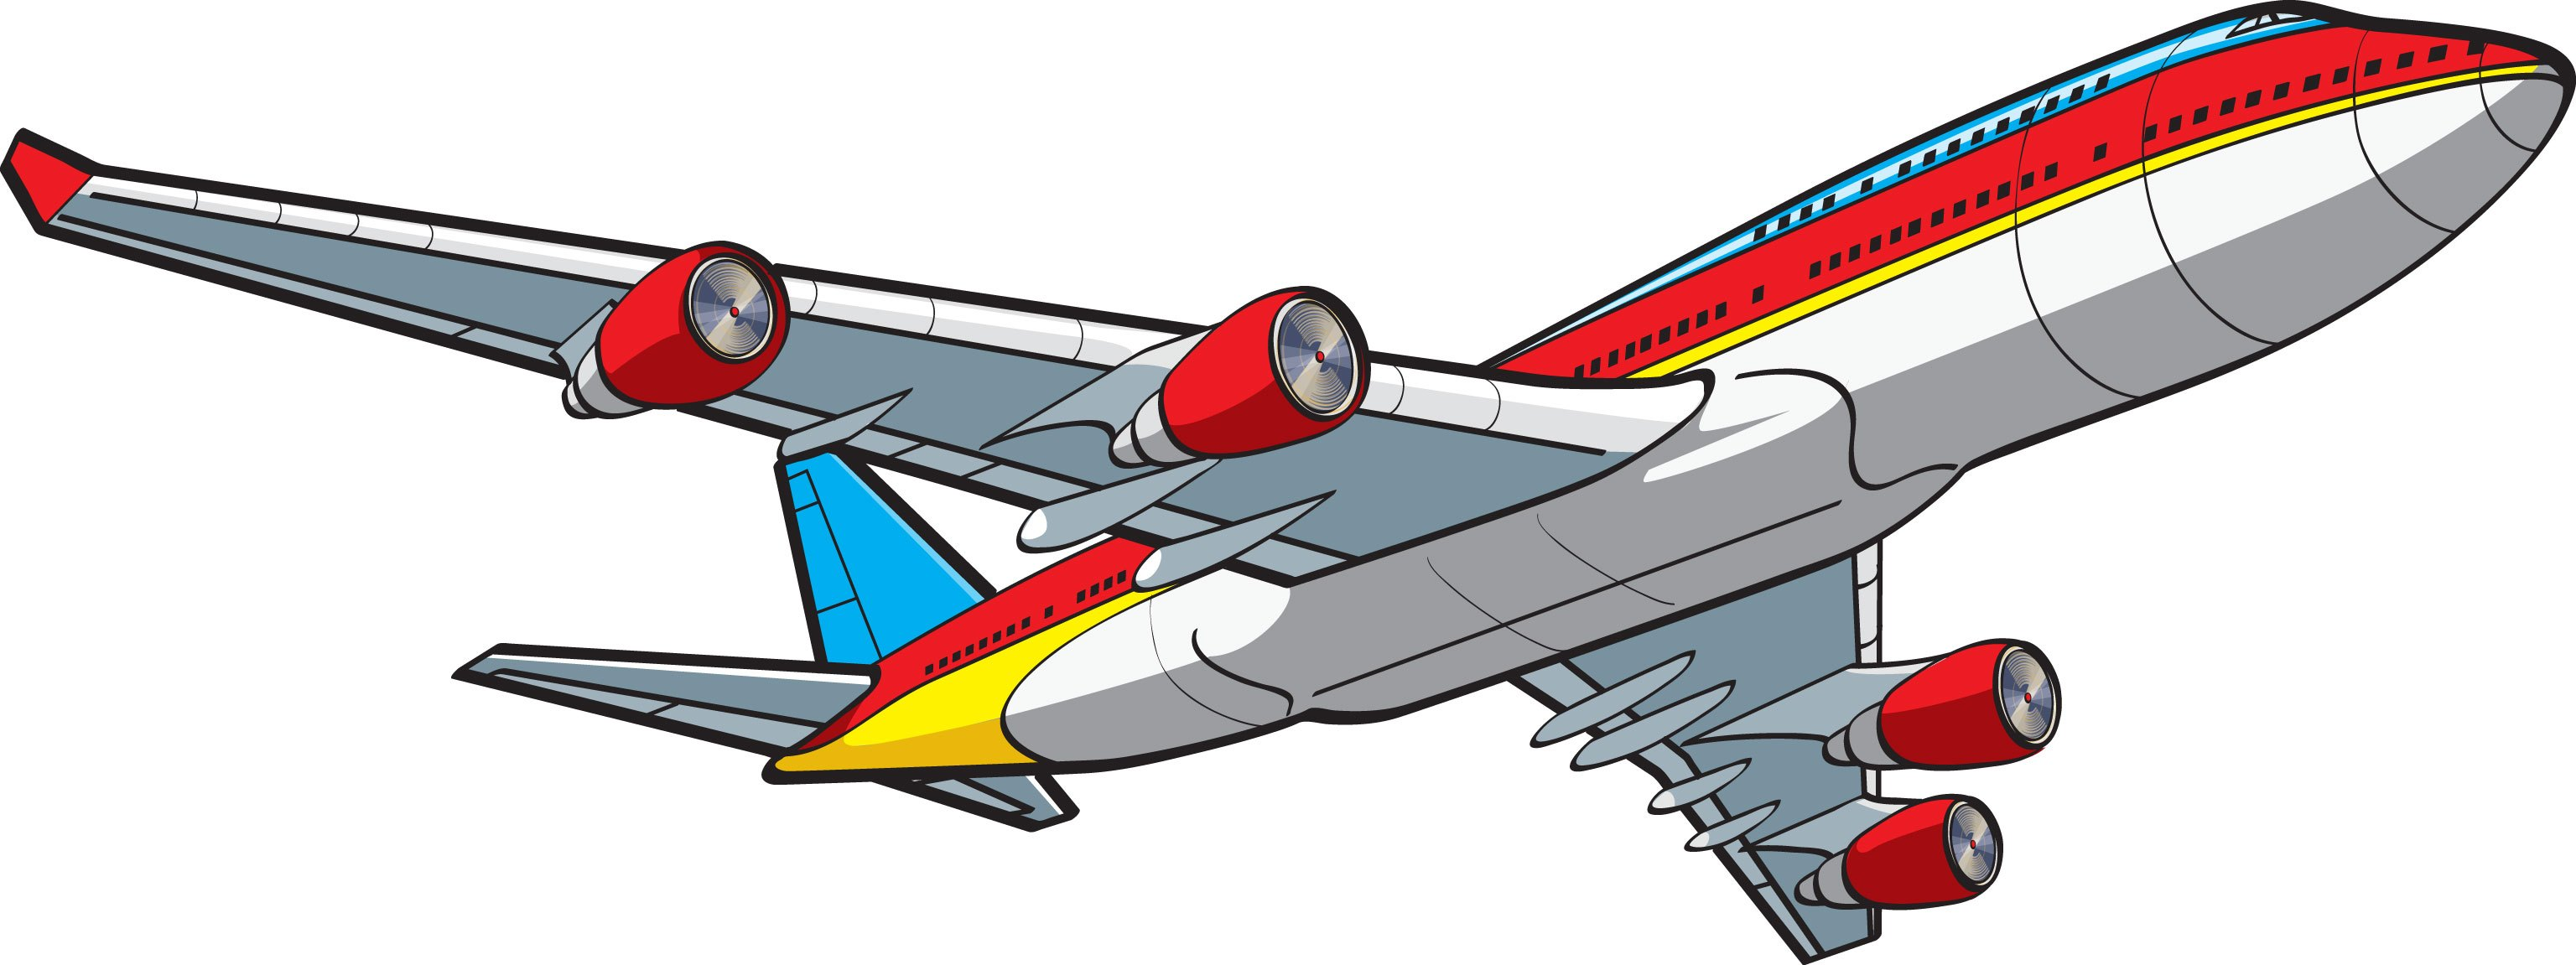 3072x1151 Free Cartoon Airplane Clipart Cartoonview.co